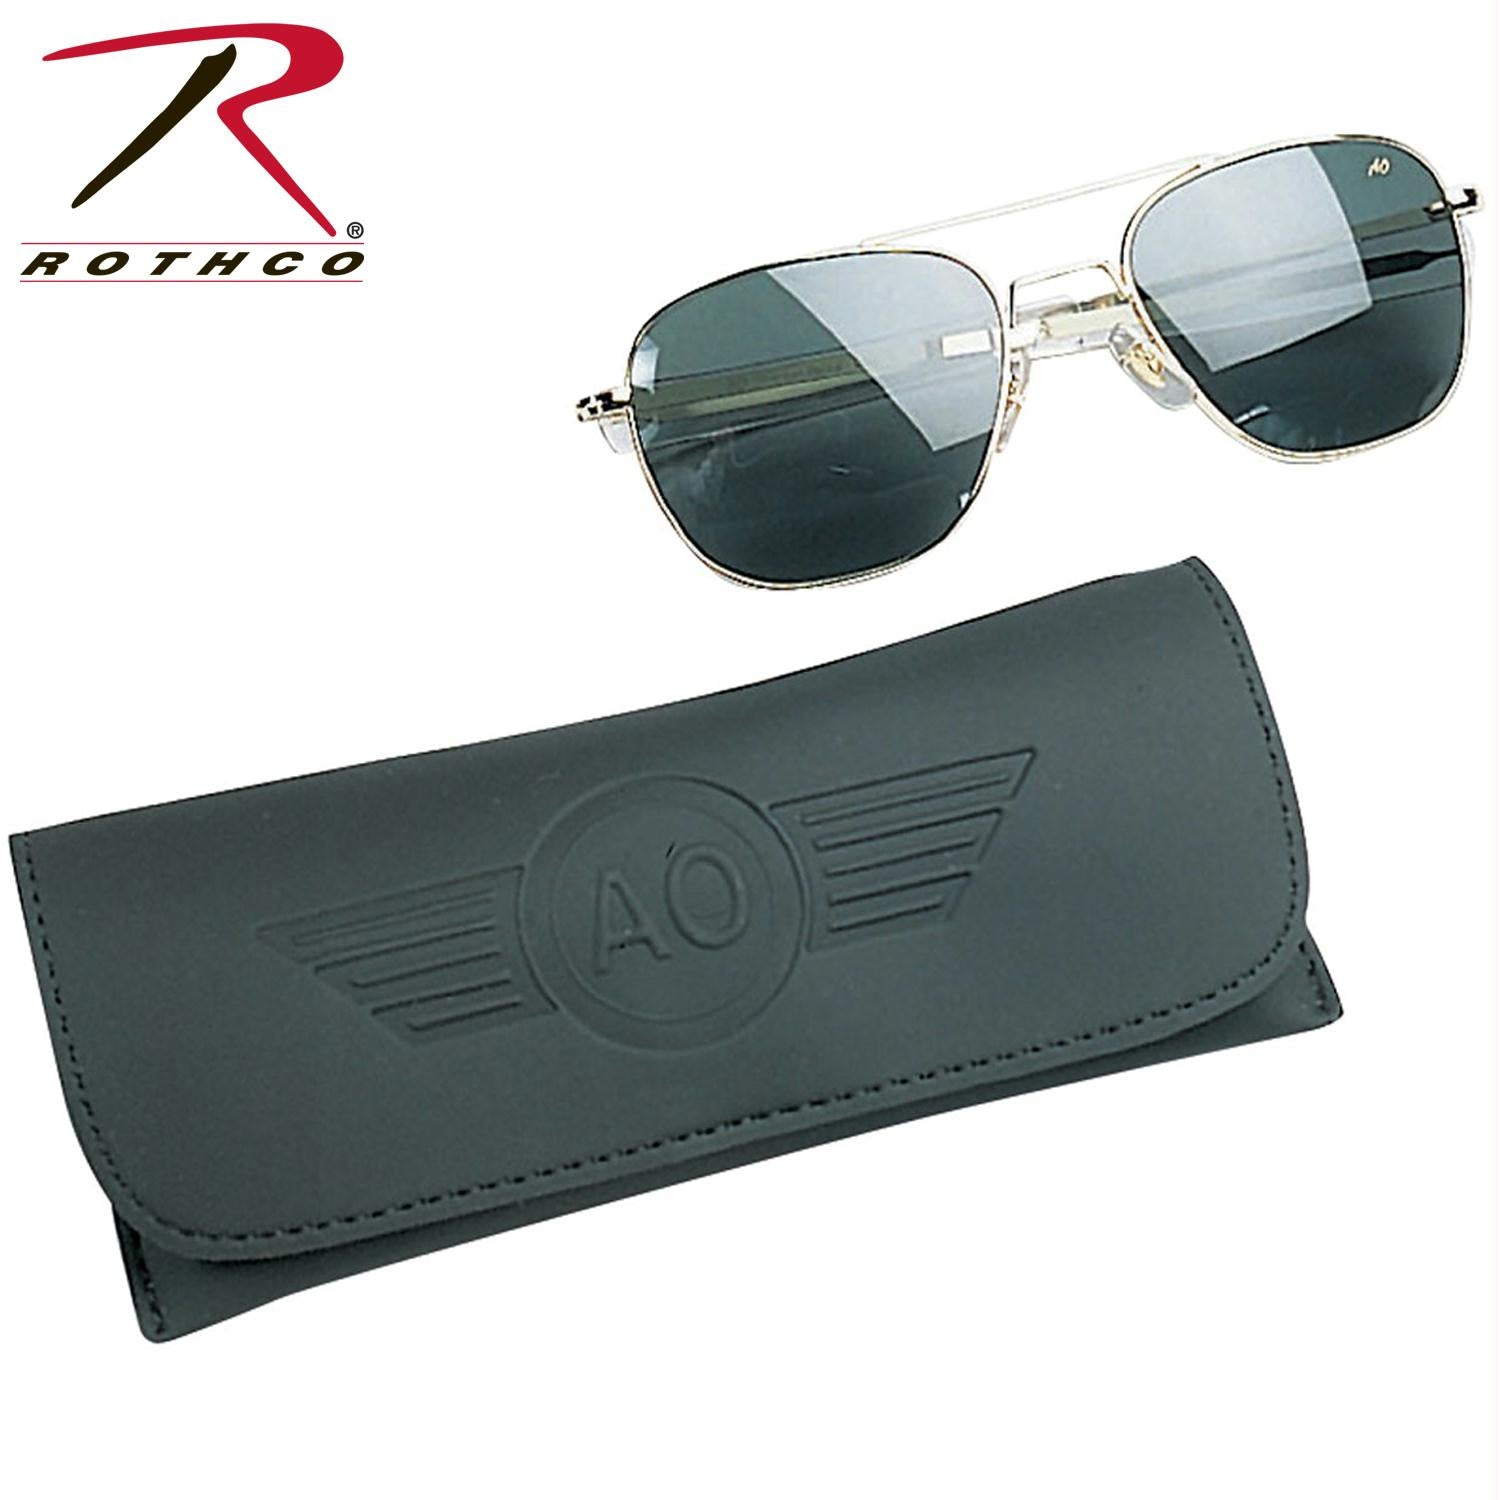 America Optical 55MM Polarized Pilot Sunglasses - Gold